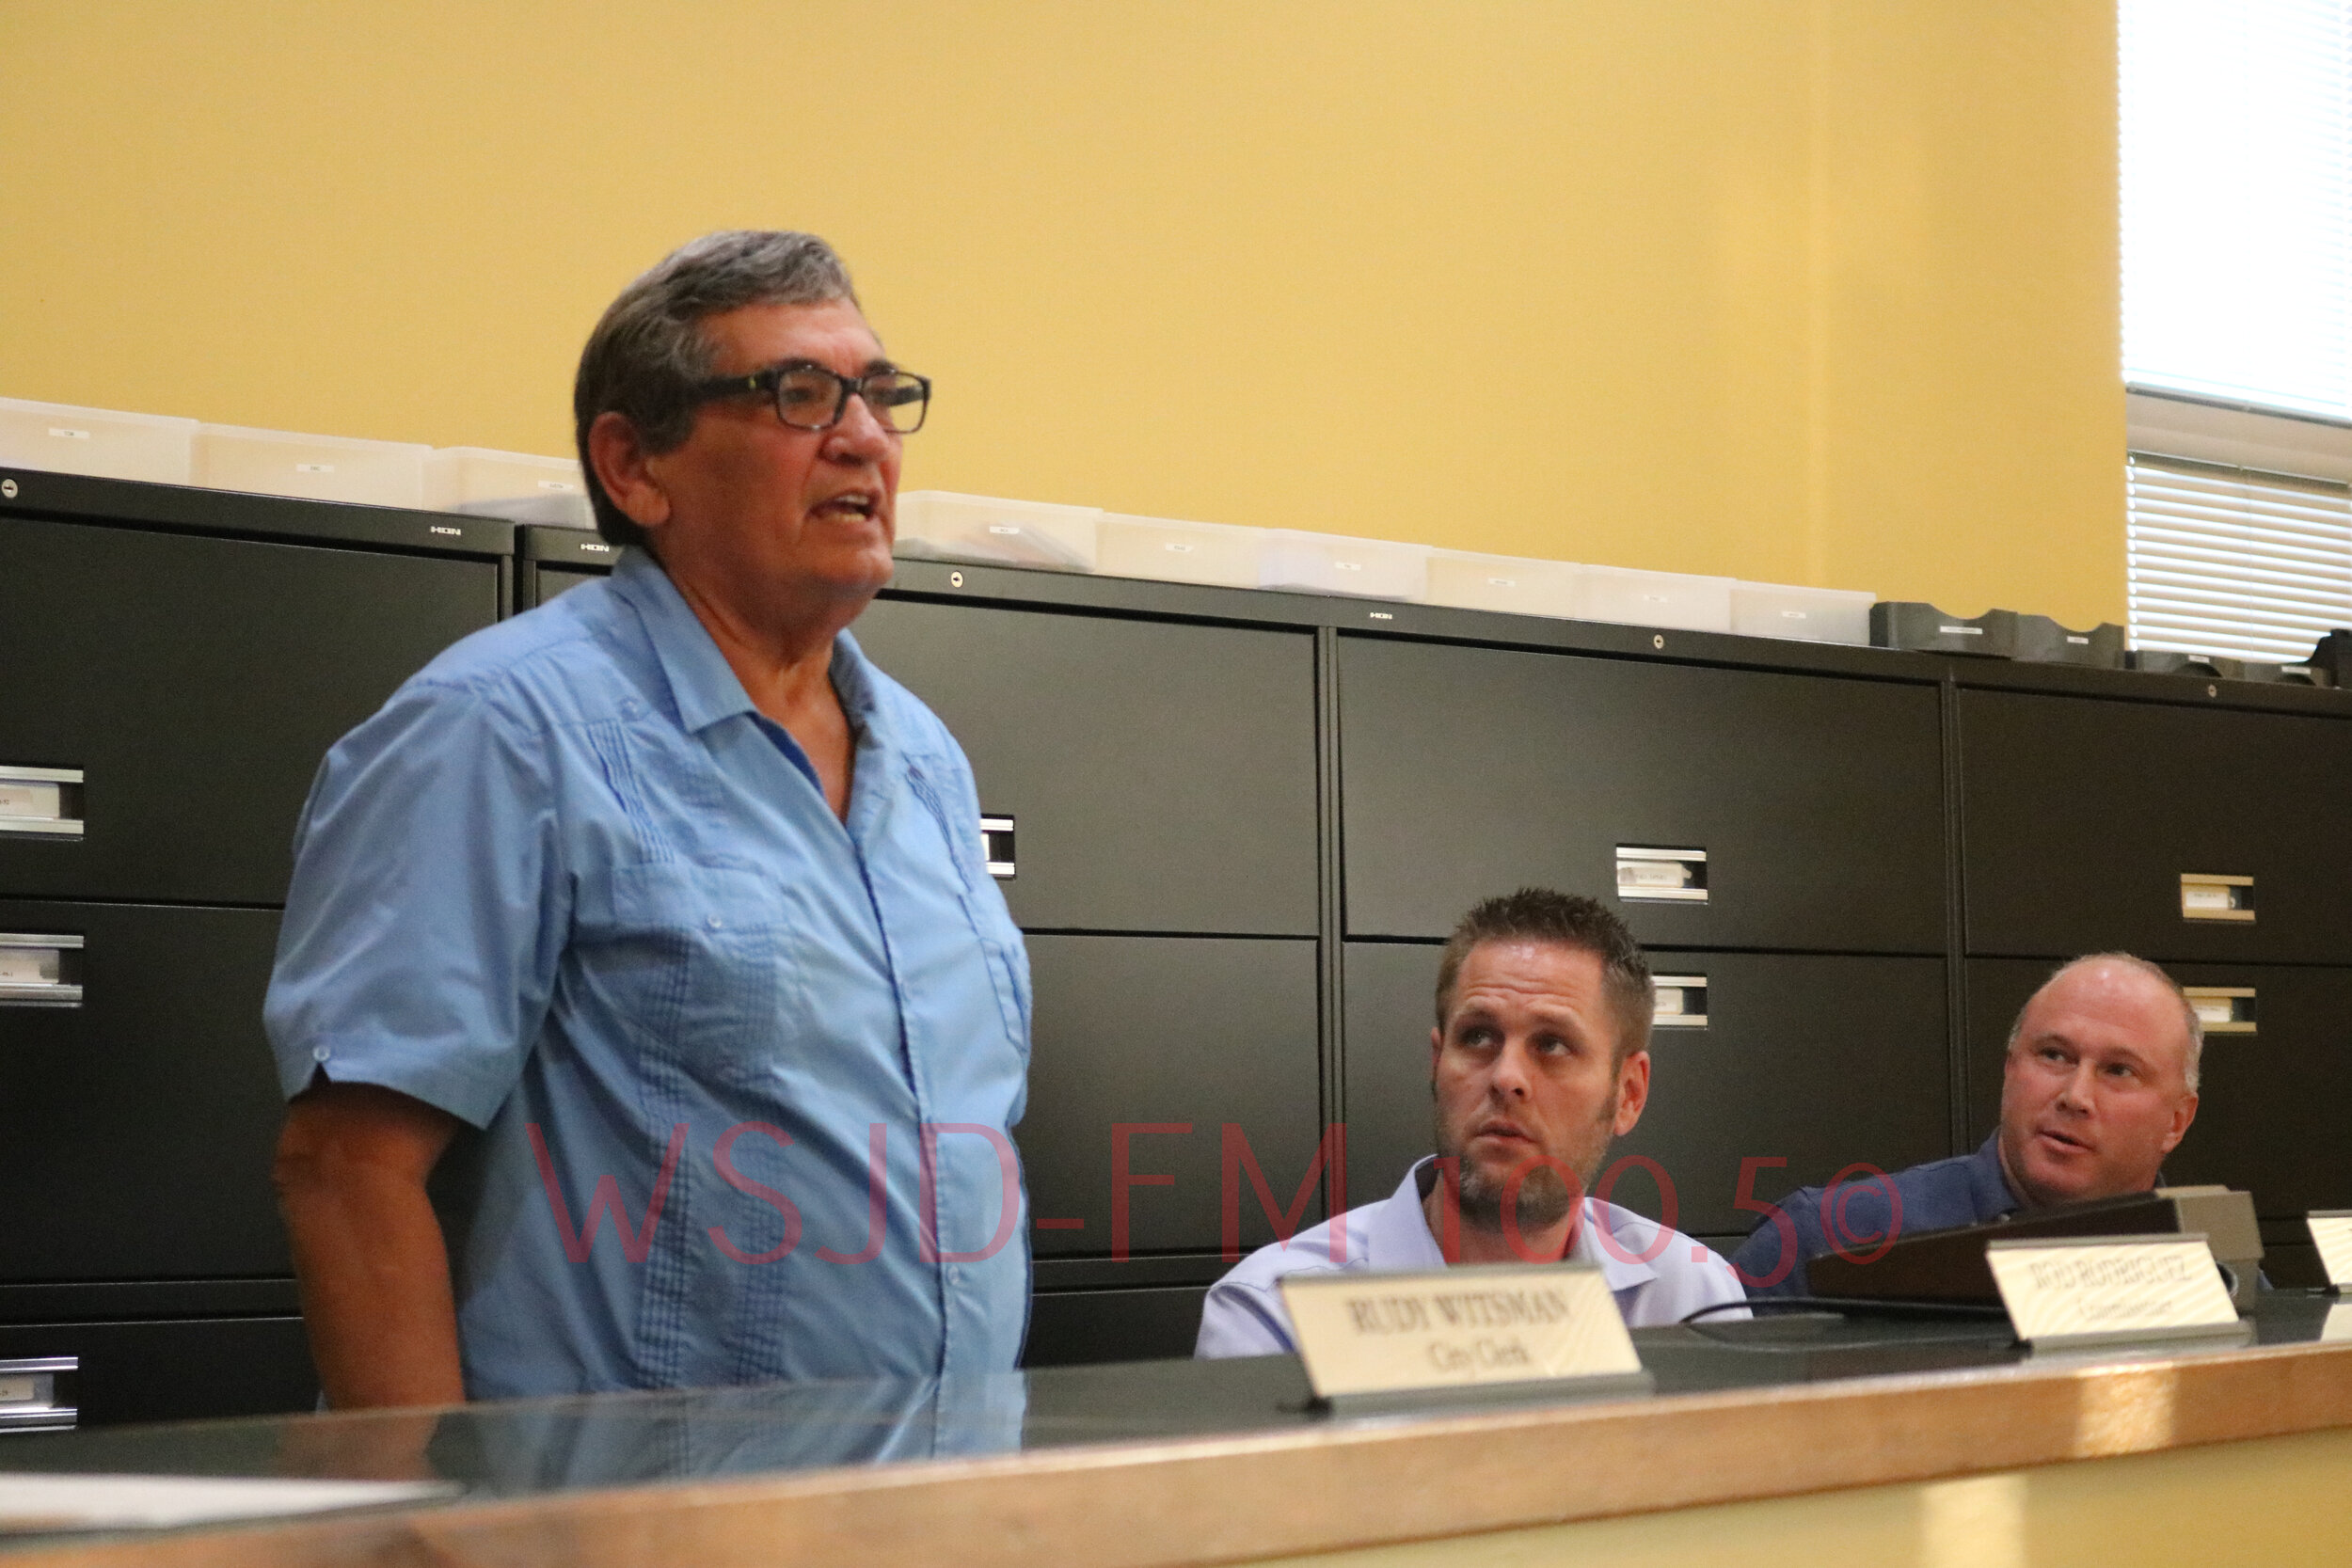 Mt  Carmel City Commissioner Rod Rodriguez announces his resignation from the City Council while Mayor Joe Judge (R) and Commissioner Justin Dulgar (Middle) look on.